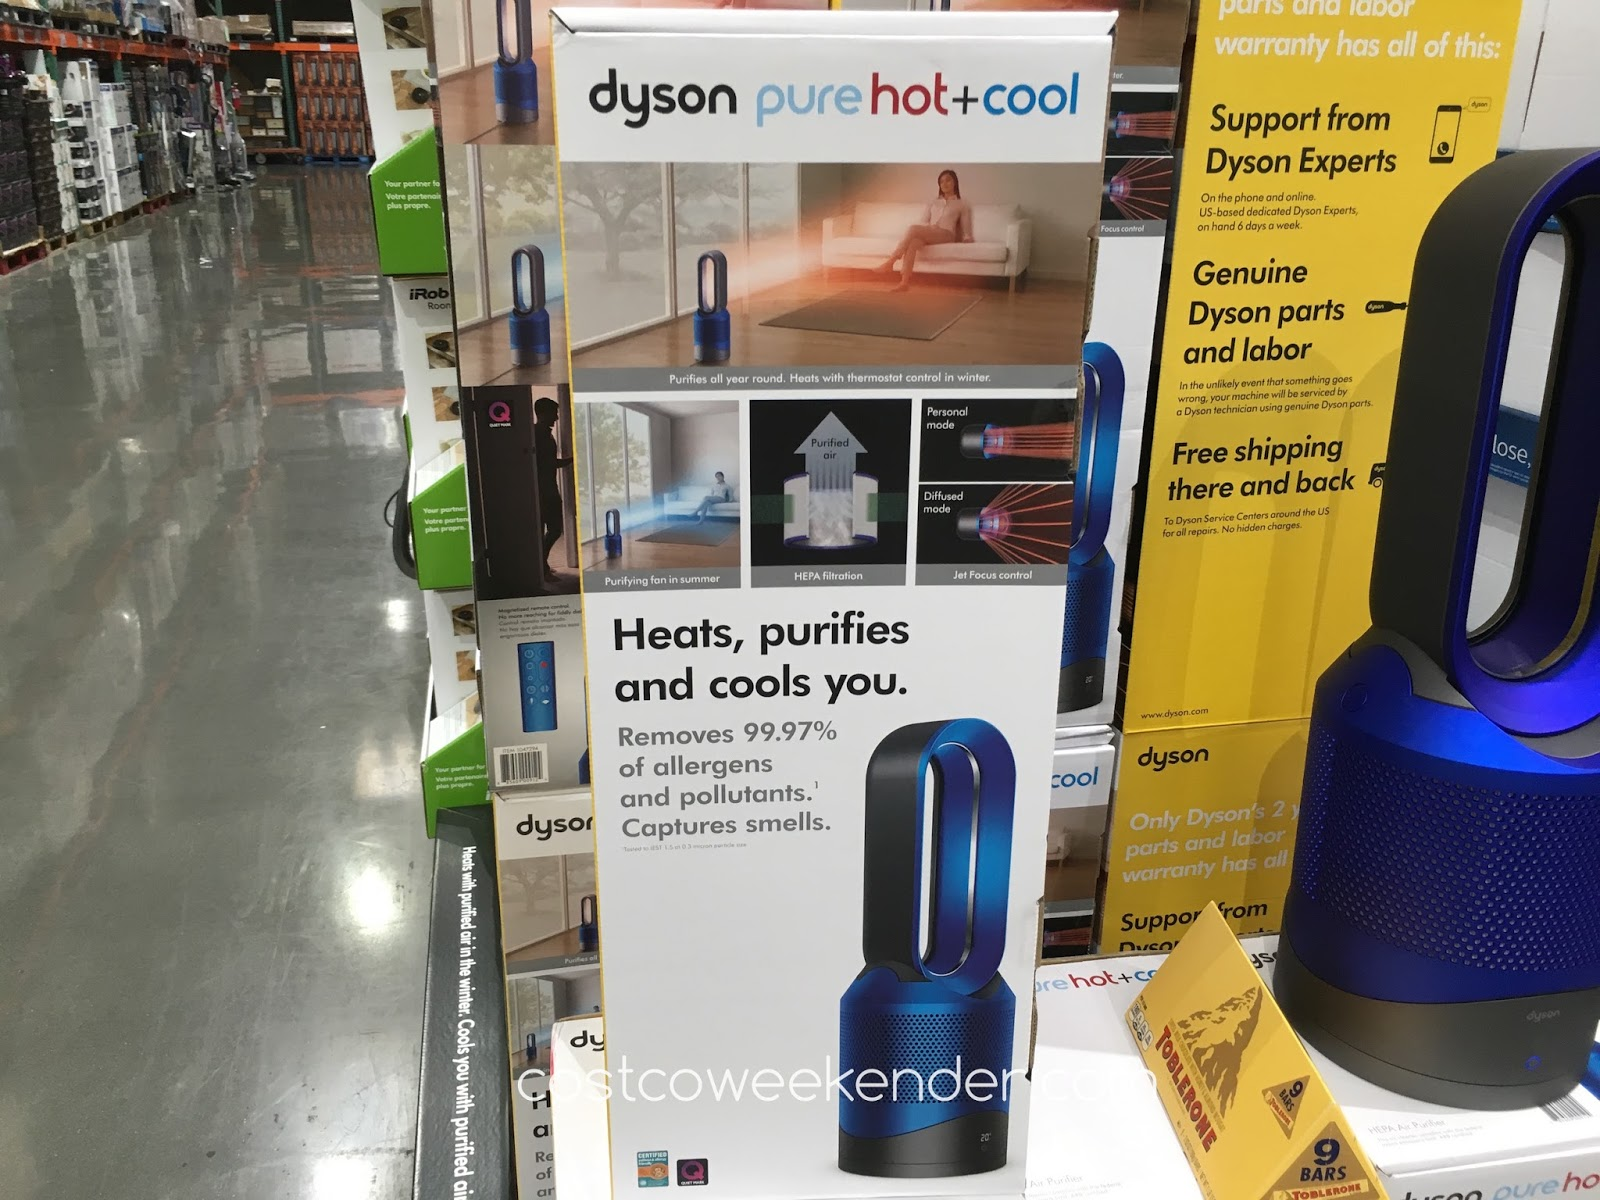 dyson pure hot cool link purifier costco weekender. Black Bedroom Furniture Sets. Home Design Ideas